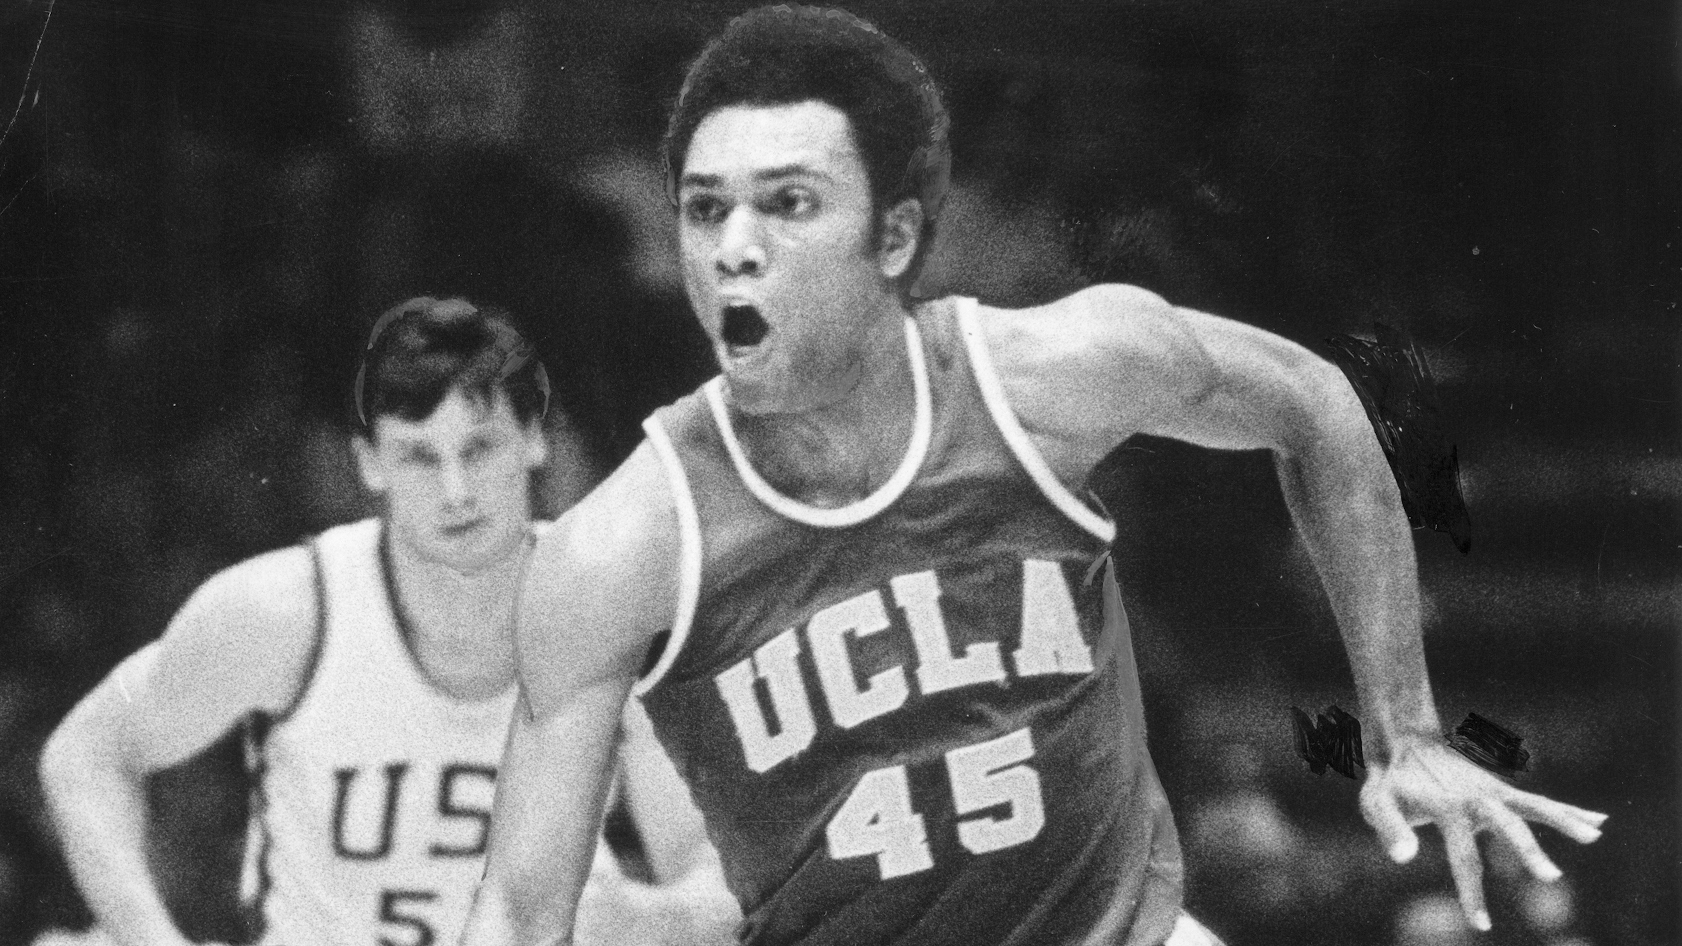 SP.0722.Mccarter.Copy of 3/8/75 b&w file photo of Andre McCarter of UCLA as he makes his way down co